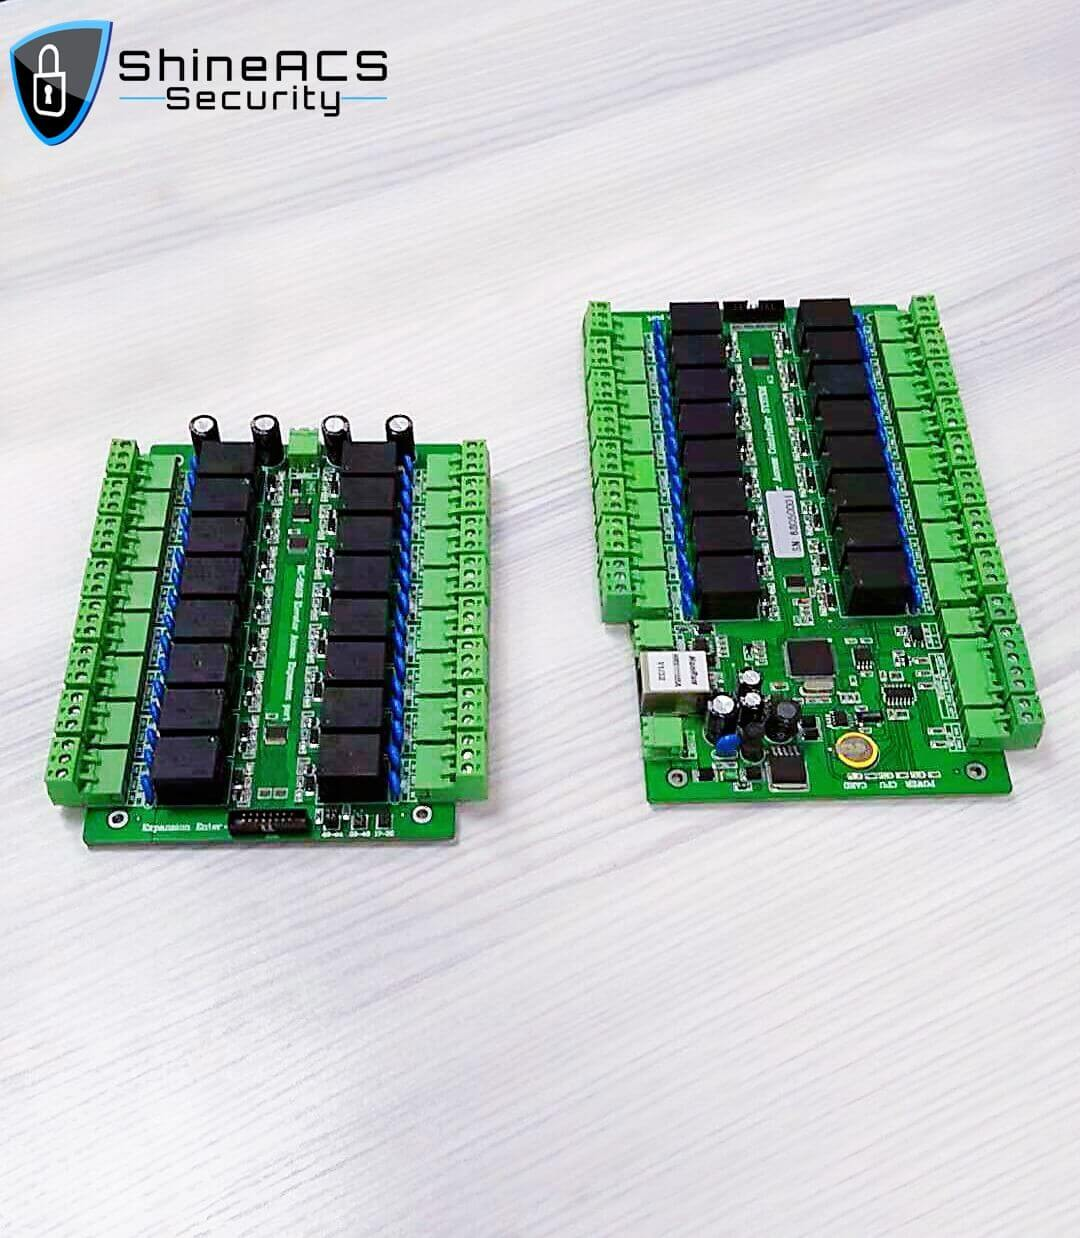 SA F16 16 Floors Elevator Controllerextended board 2 - ShineACS Access Control Products